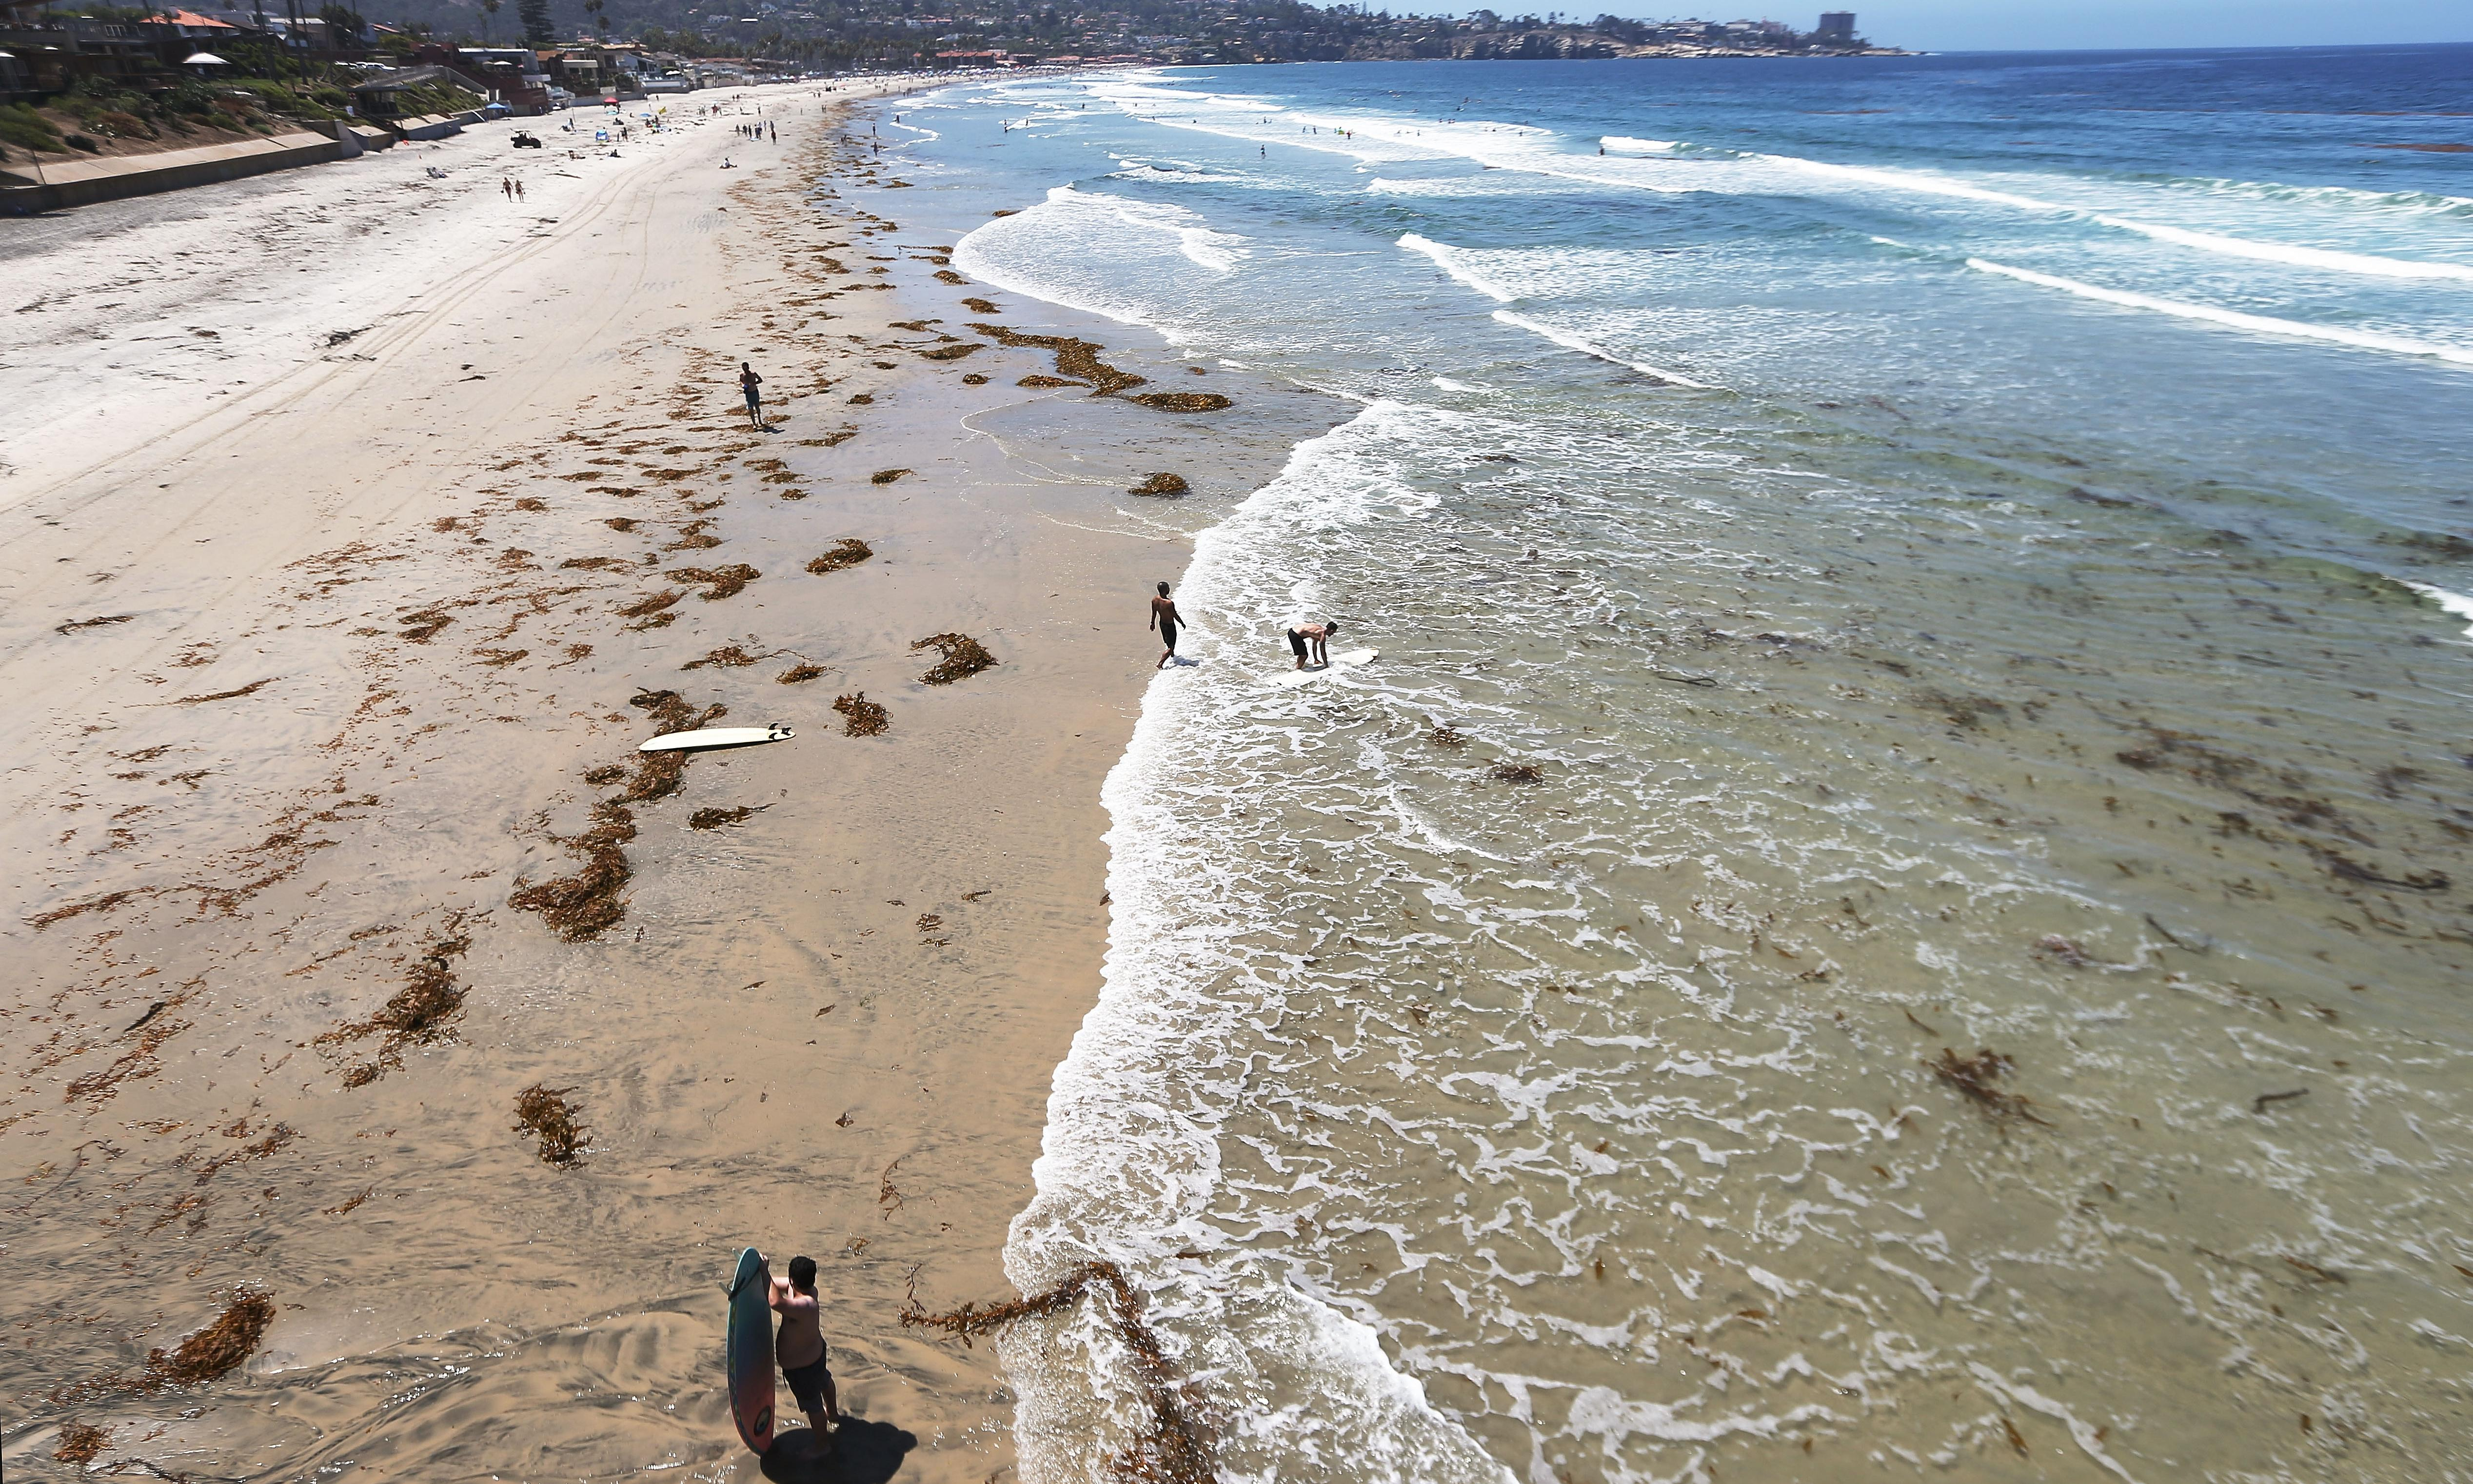 Sea life in 'peril' as ocean temperatures hit all-time high in San Diego